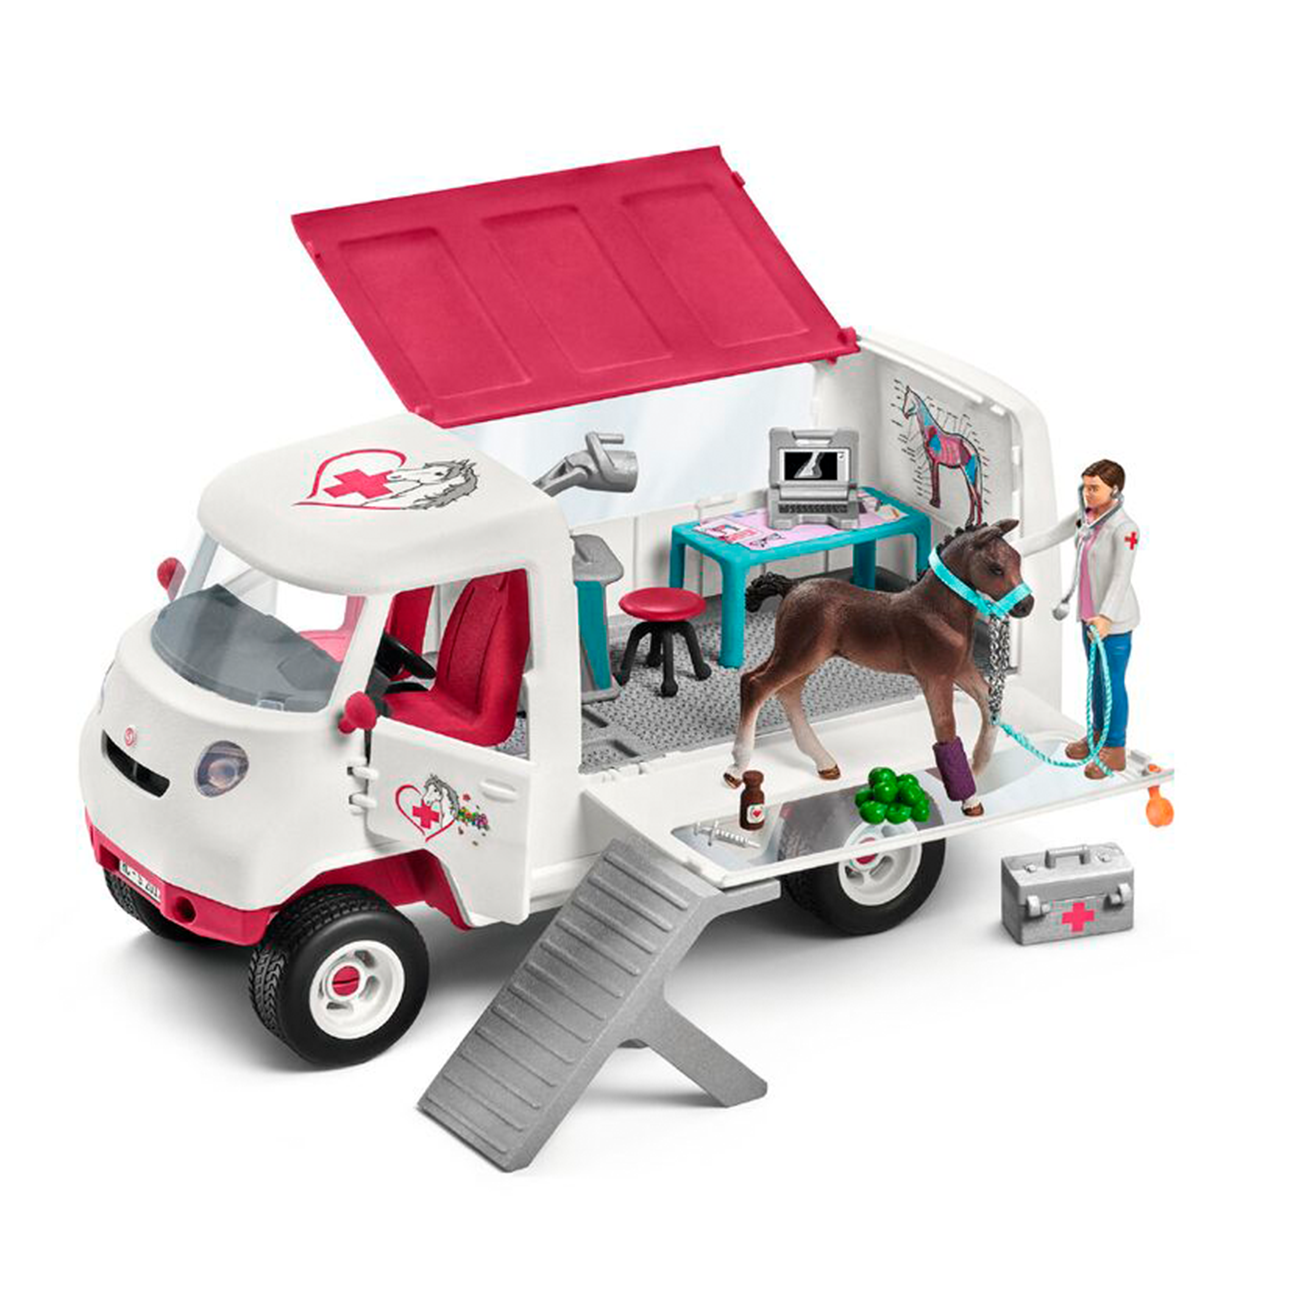 Schleich Horse Club Mobile Vet with Hanoverian Foal